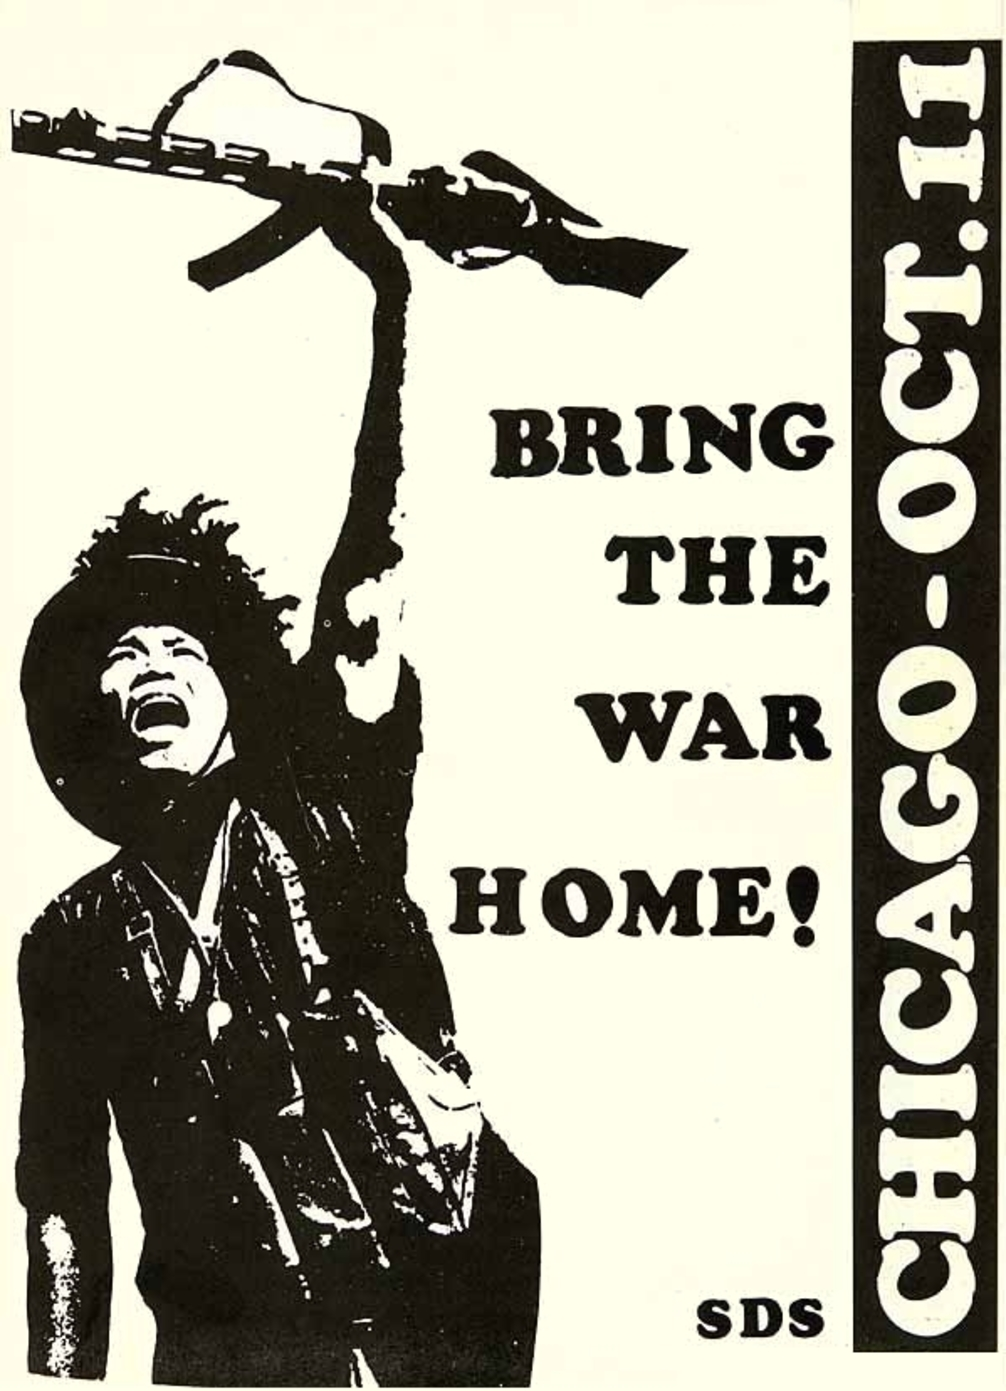 Poster from the 1969 Days of Rage demonstrations